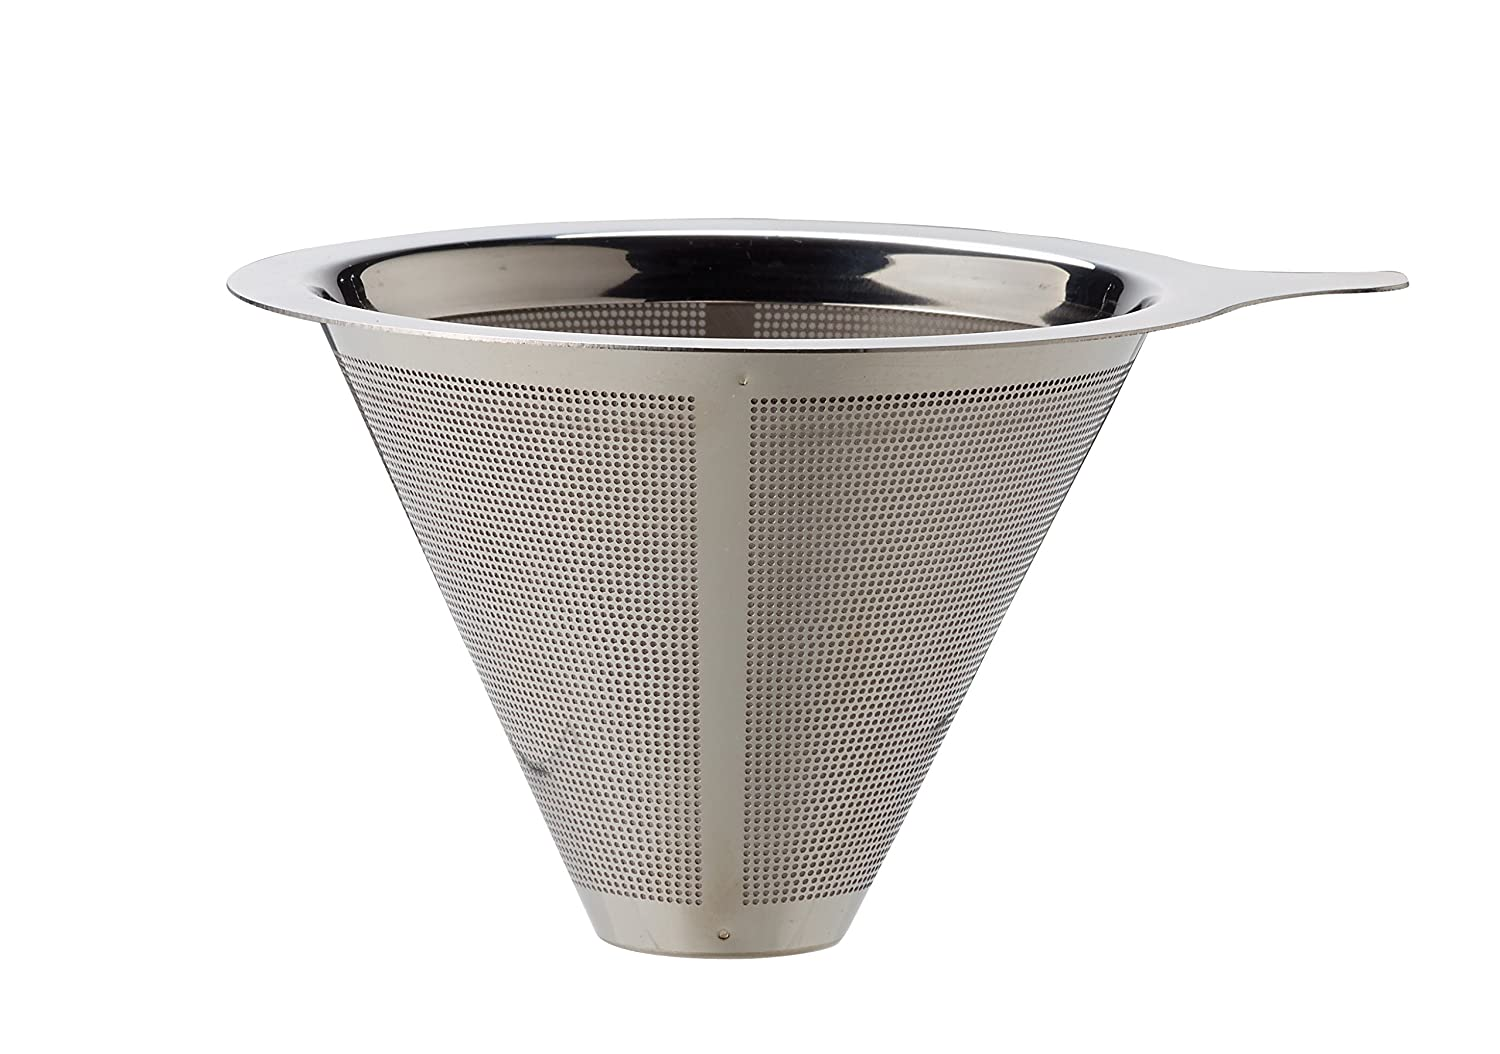 Harold Import Company HIC Pour-Over Coffee Filter 4-Cup Capacity, Silver eBay